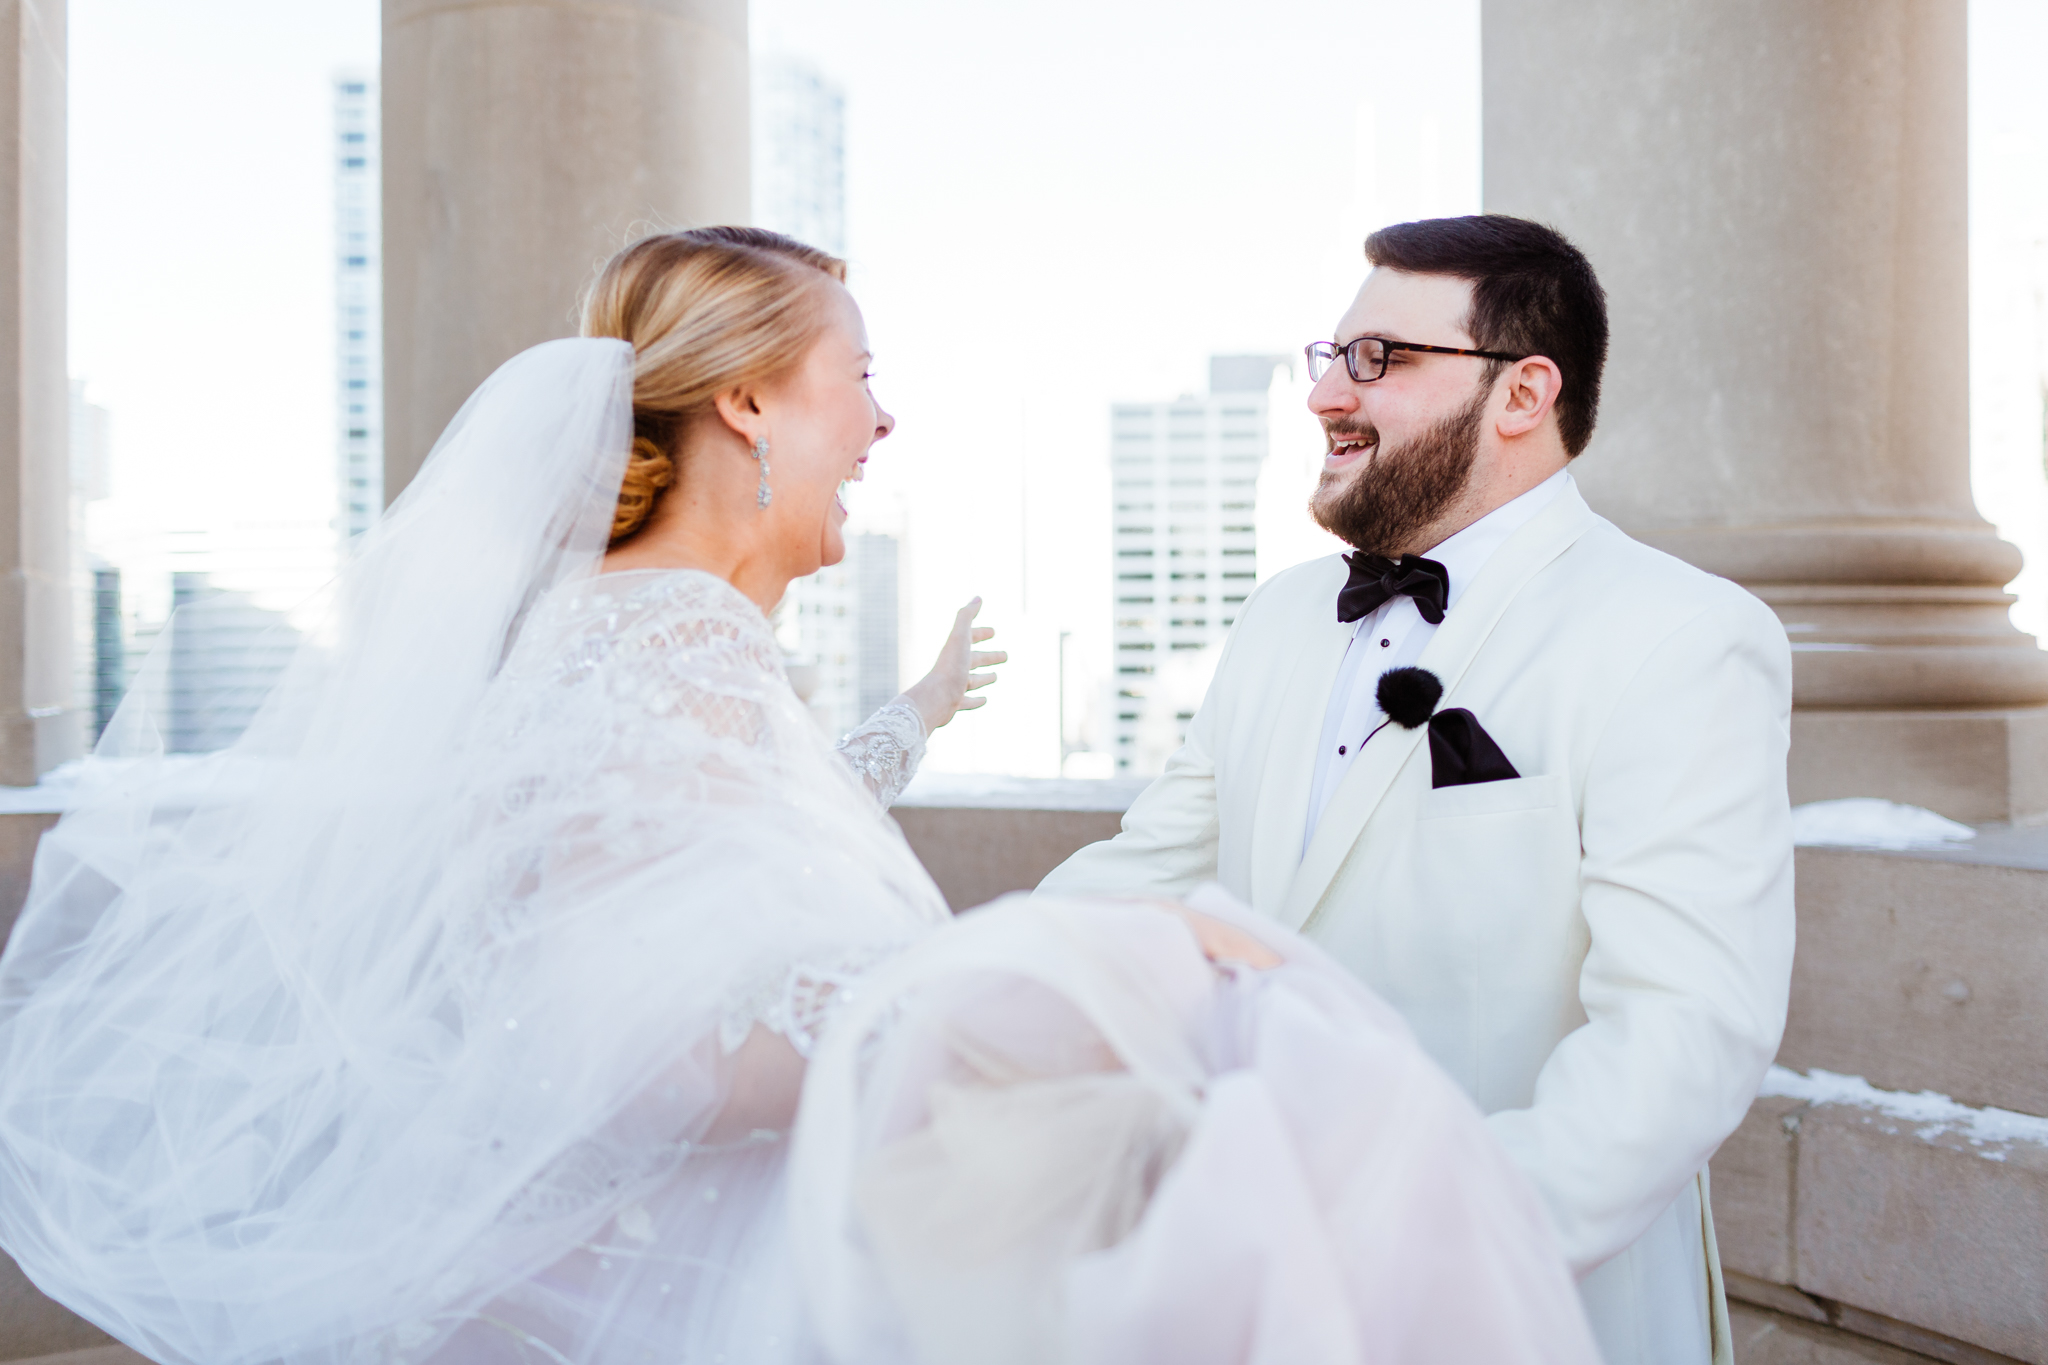 Bride and groom embrace after first look on their wedding day